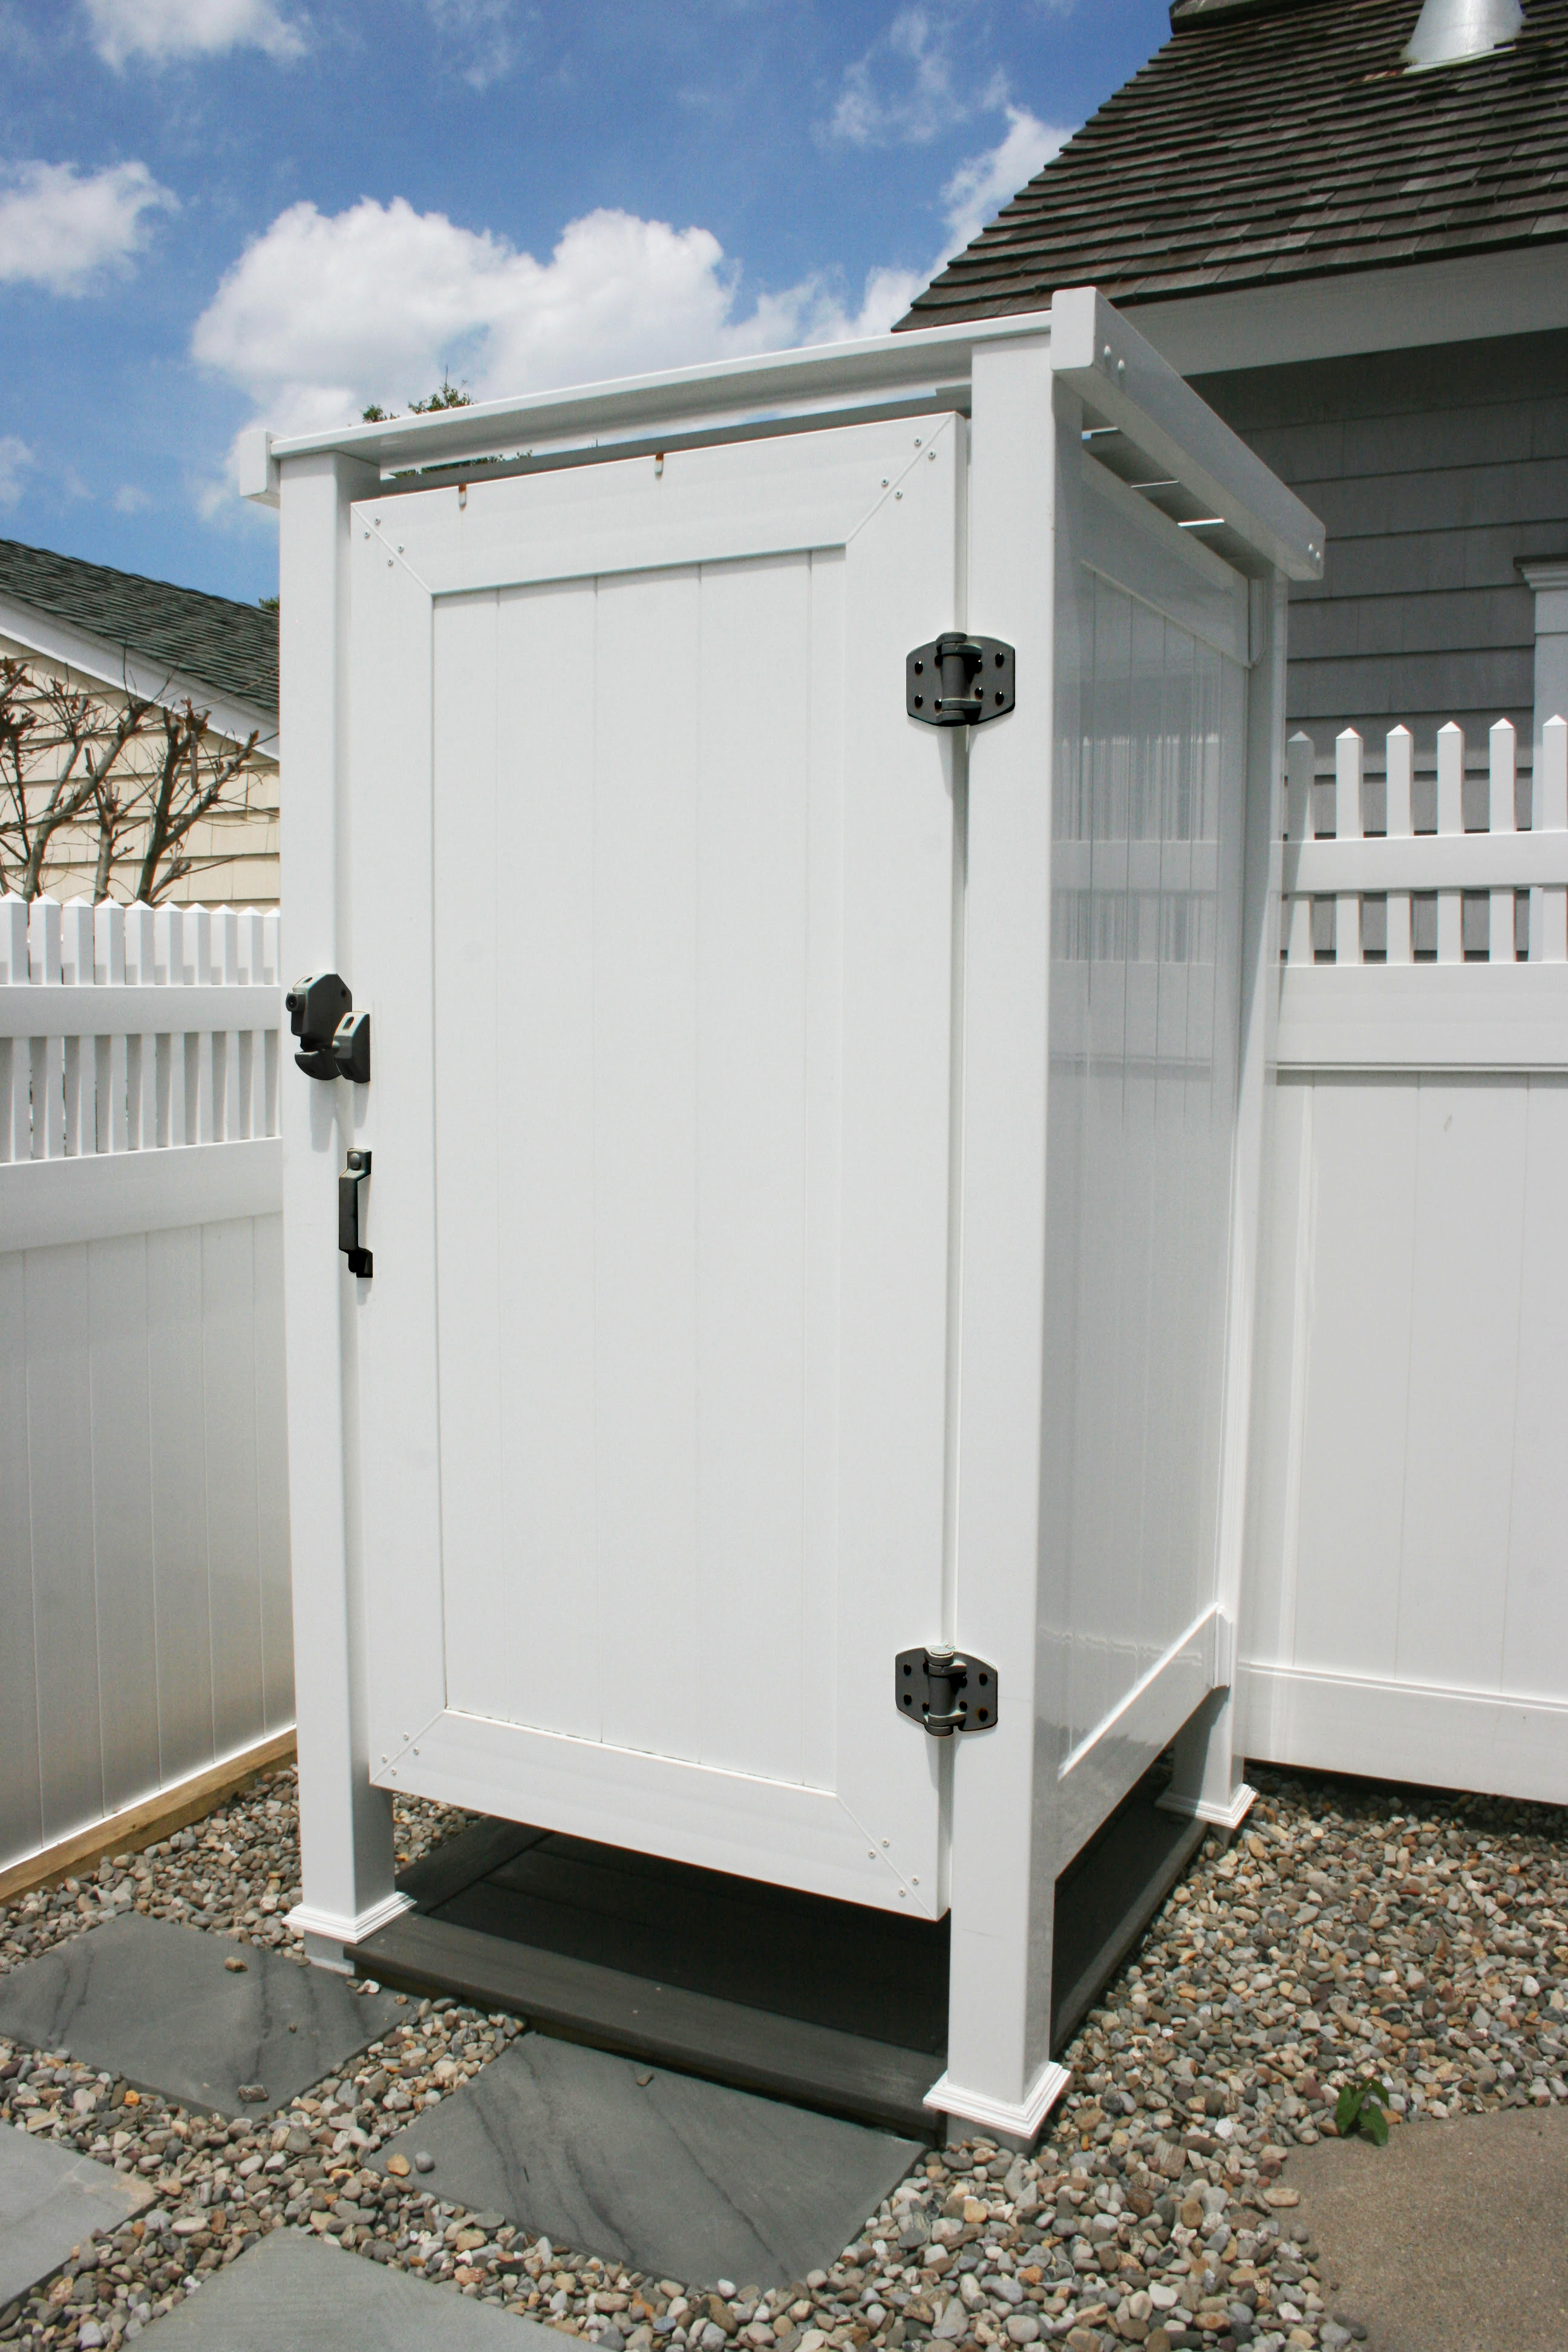 Phoenix Manufacturing Outdoor Shower Enclosure - Hardware